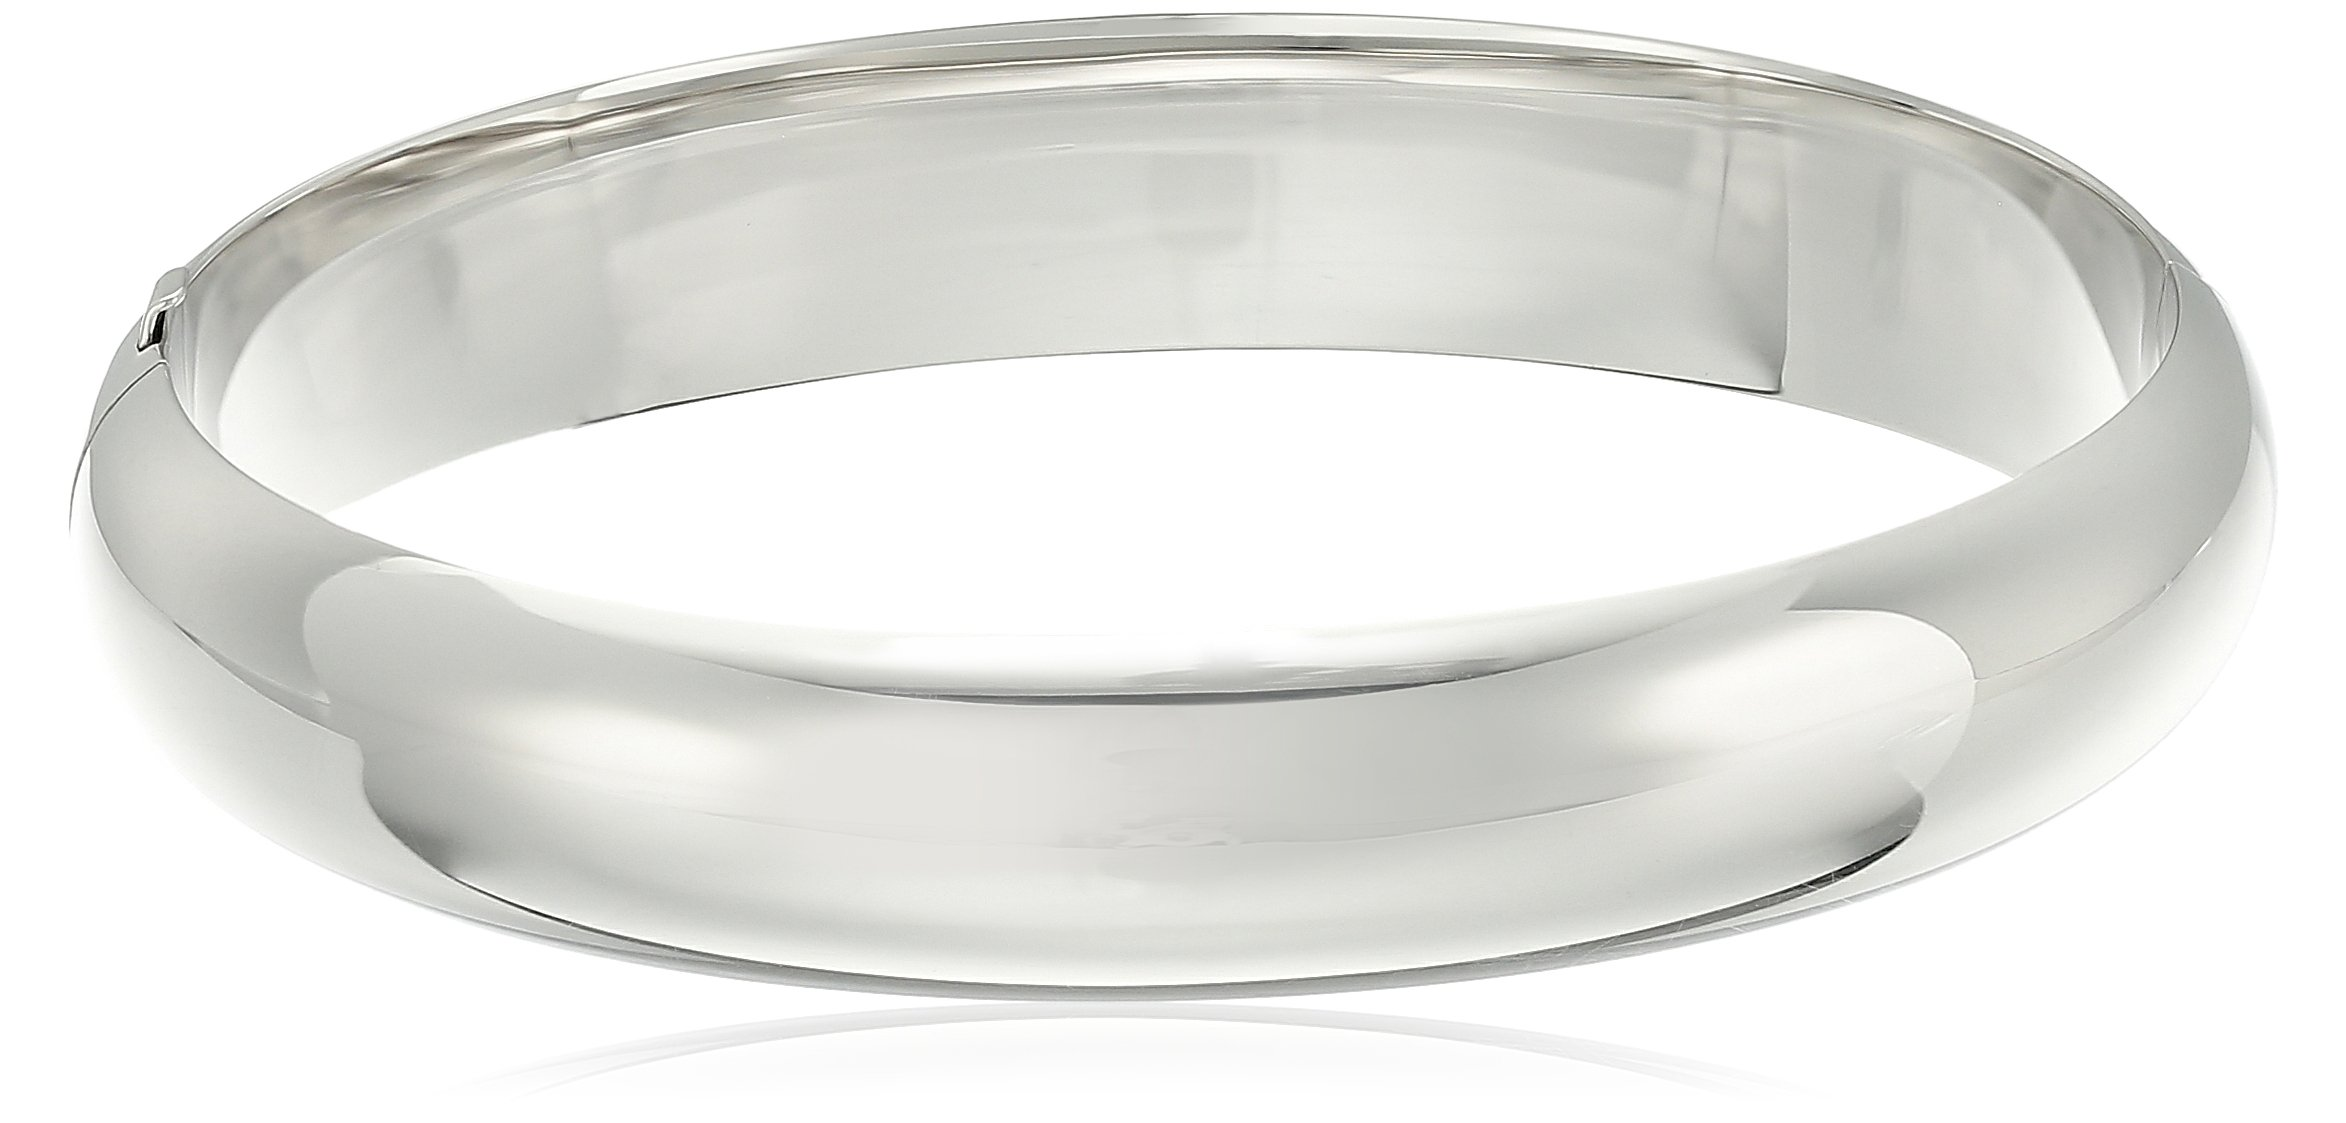 Sterling Silver Larger Wrist Guard and Hinge Bangle Bracelet